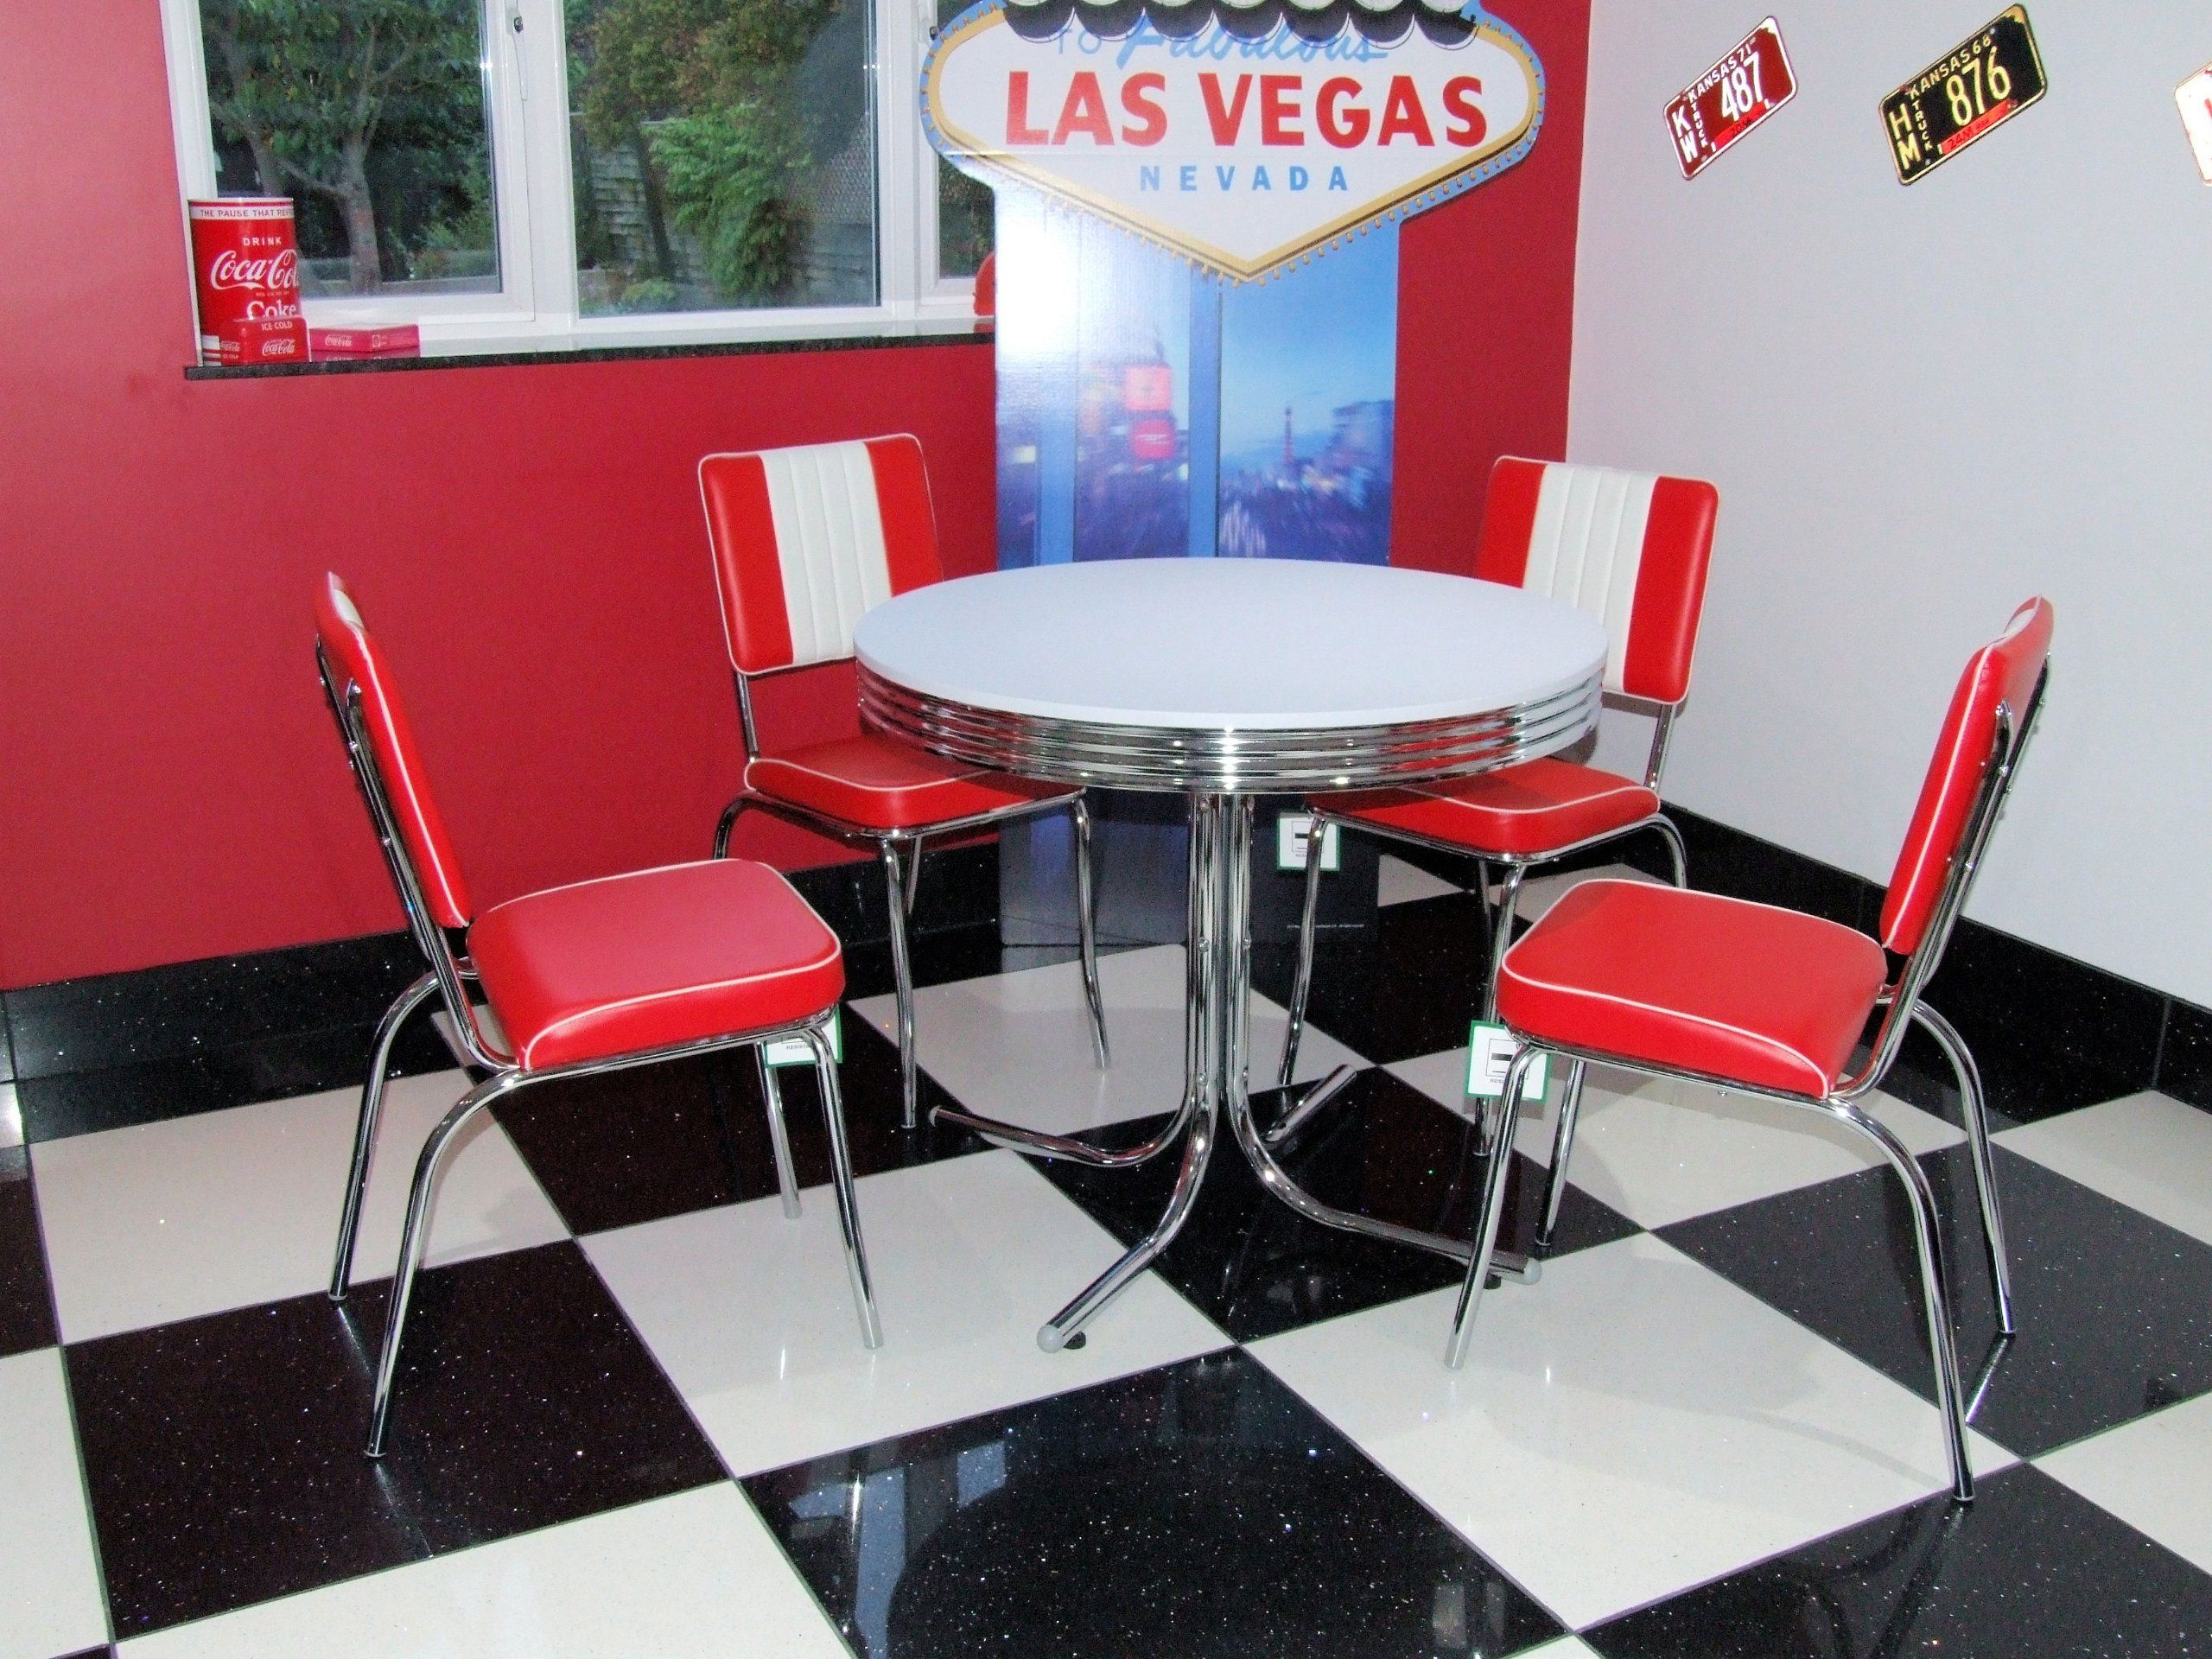 50s Table And Chairs American 50s Diner Furniture Budget Retro Style Table And